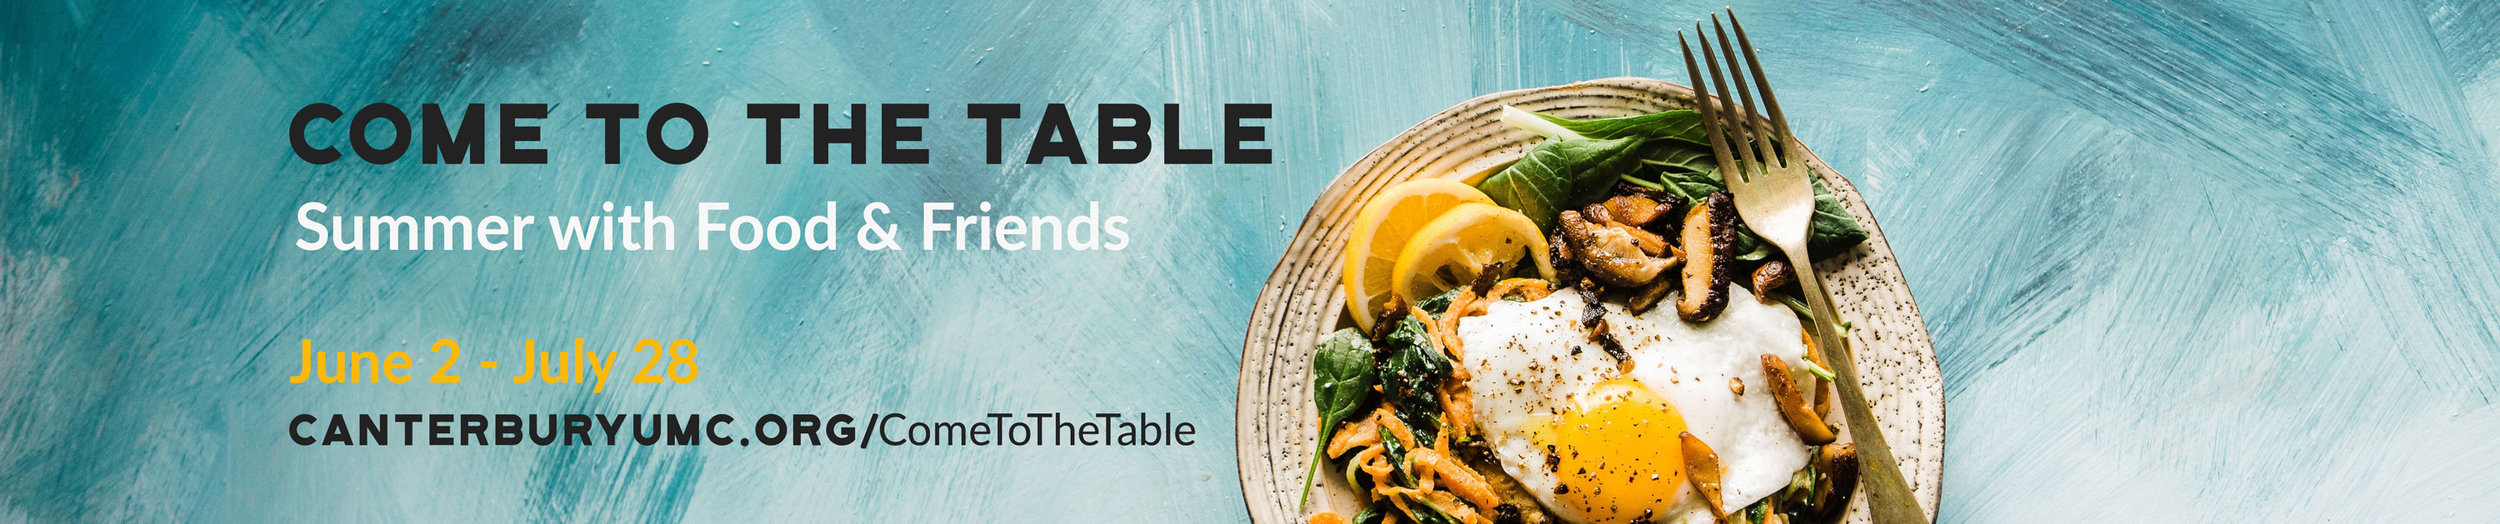 come-to-the-table-banner-slide.jpg